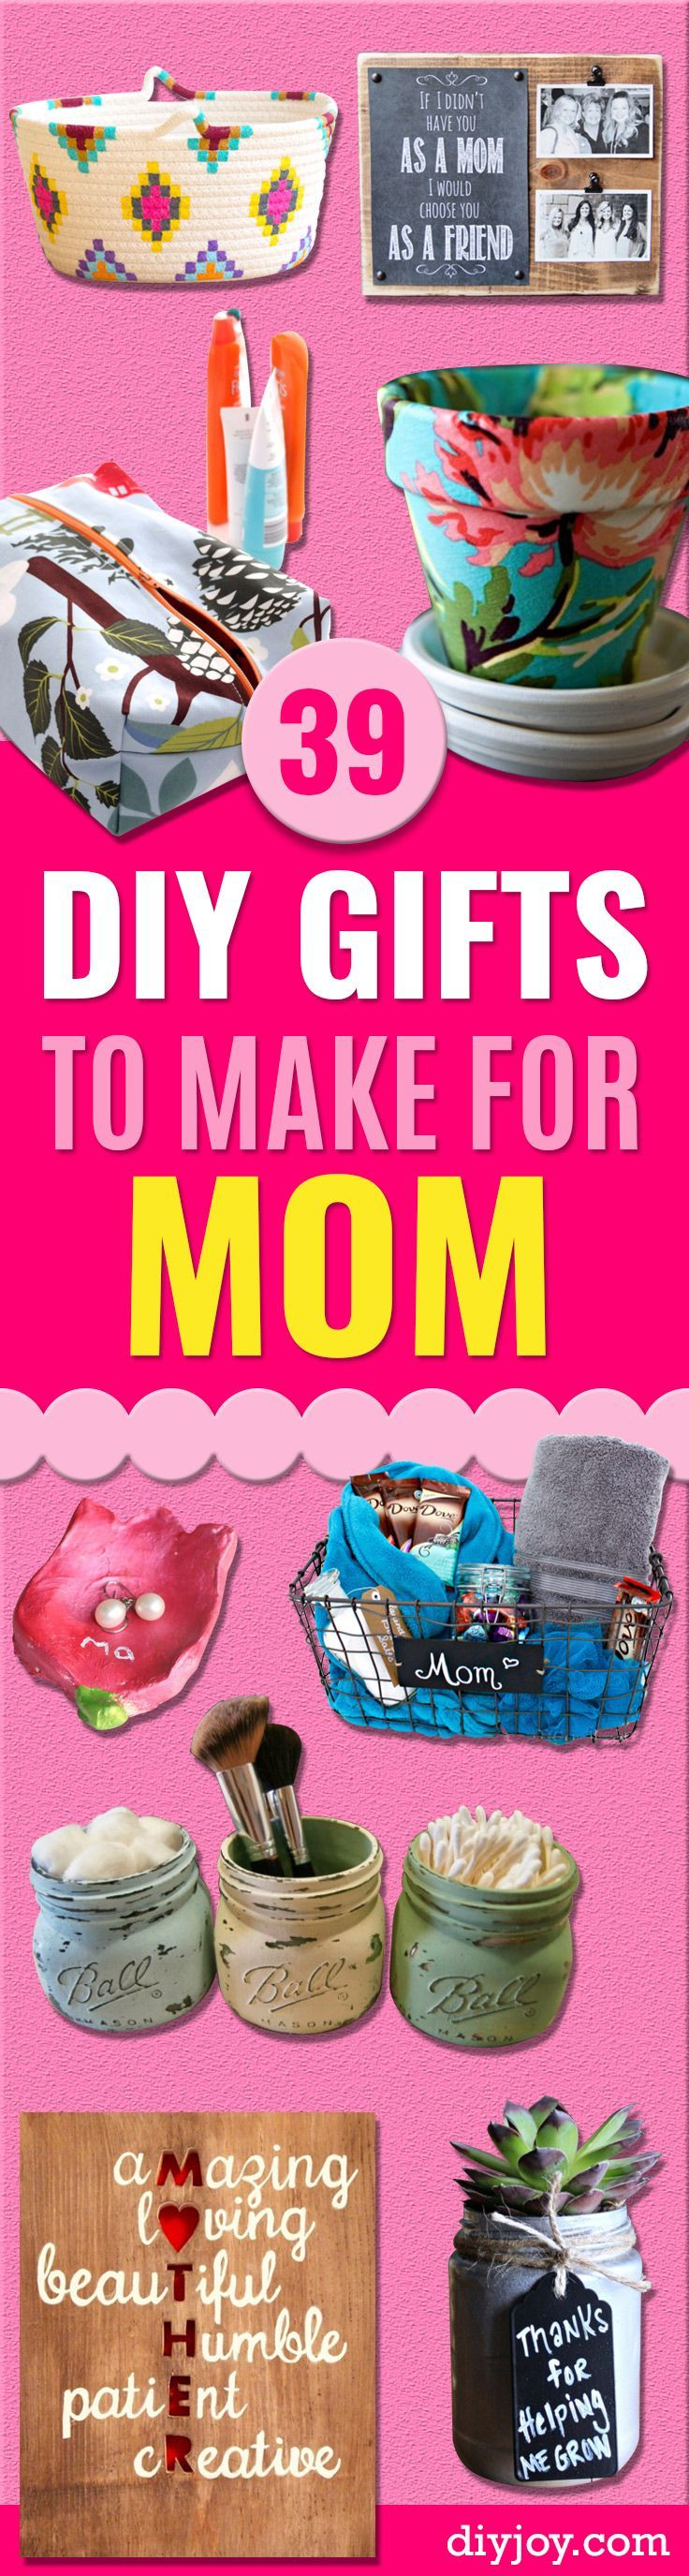 gifts to get mom for christmas my web value